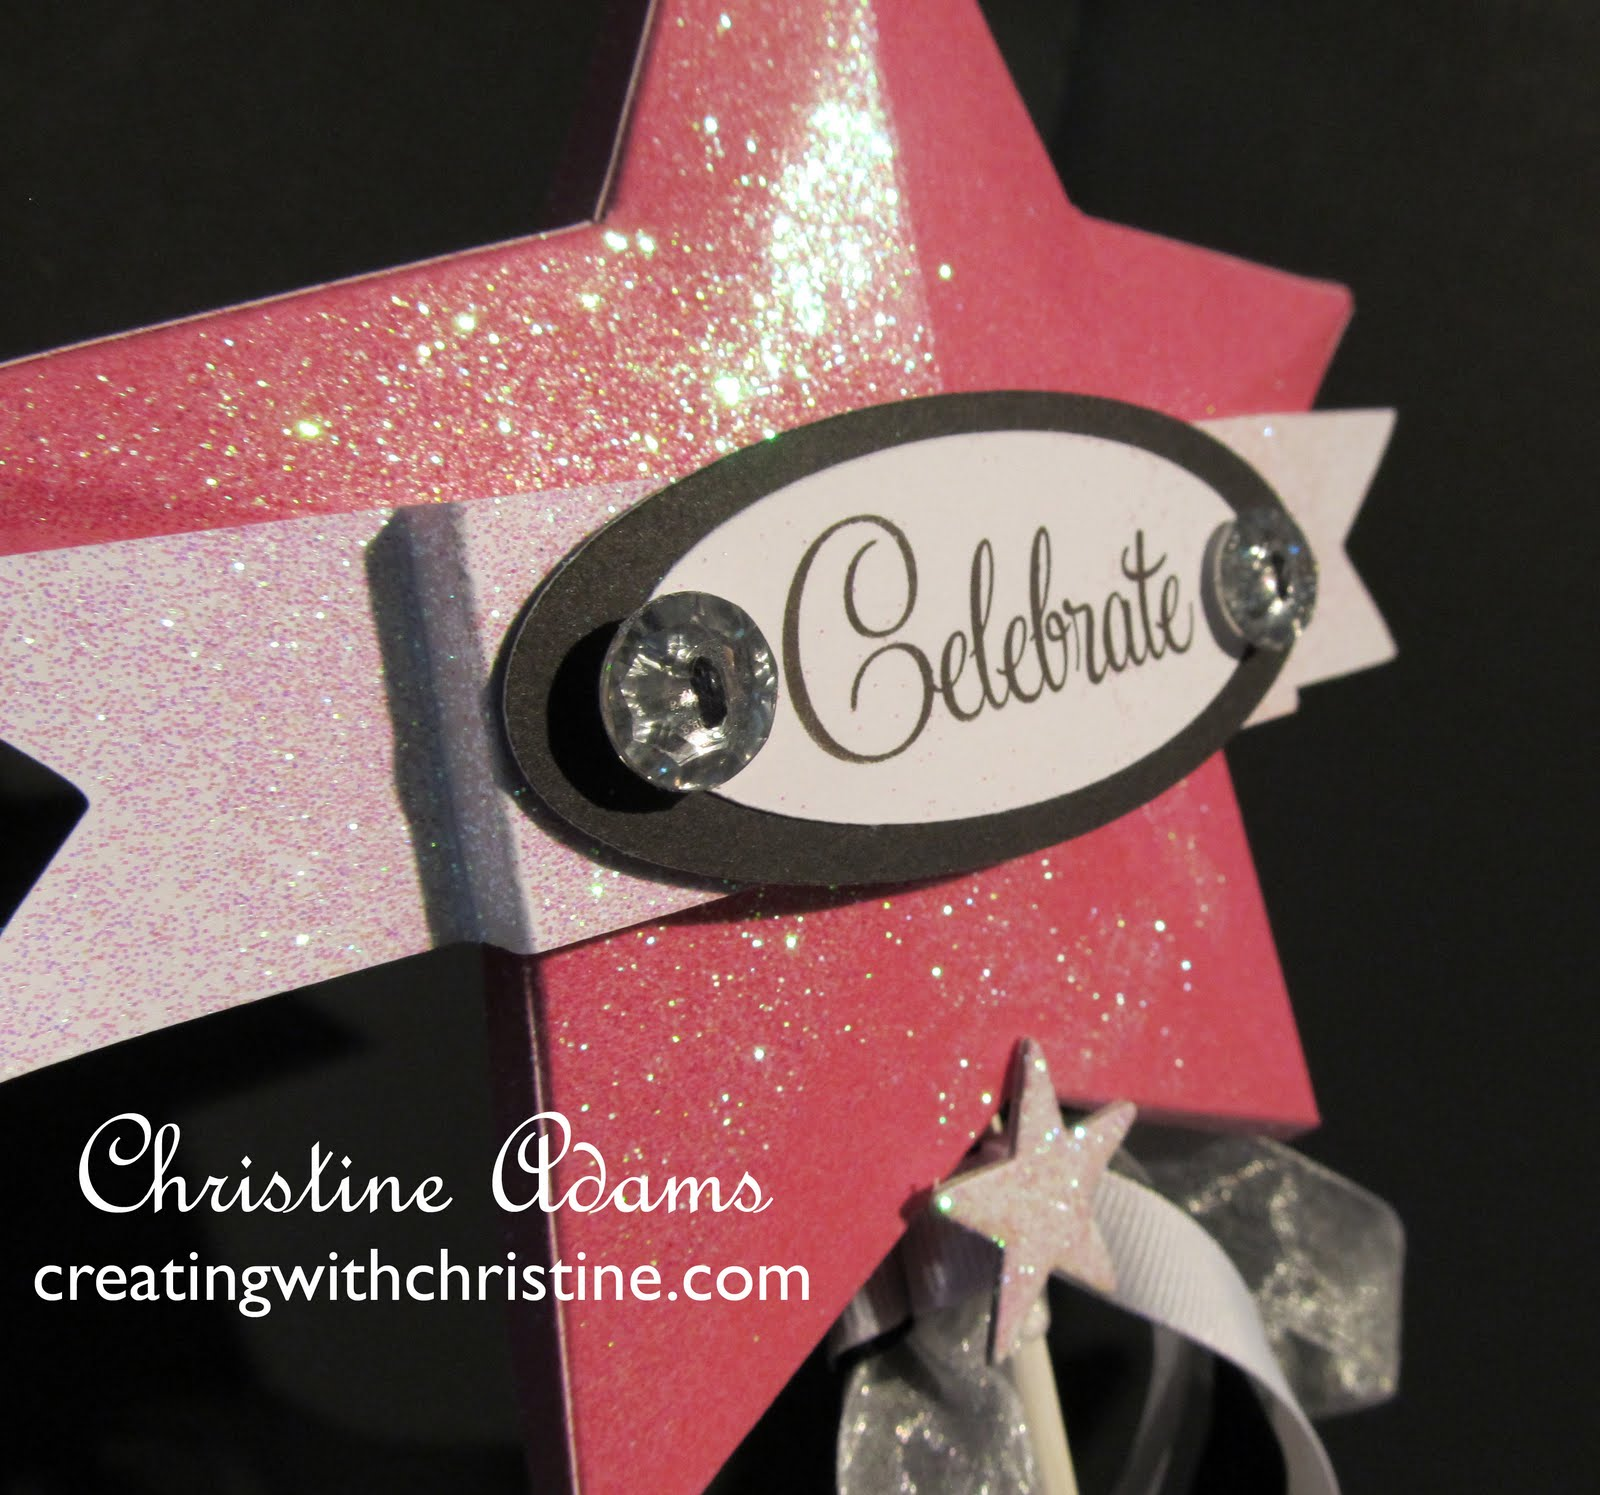 Creating with Christine: July 2011